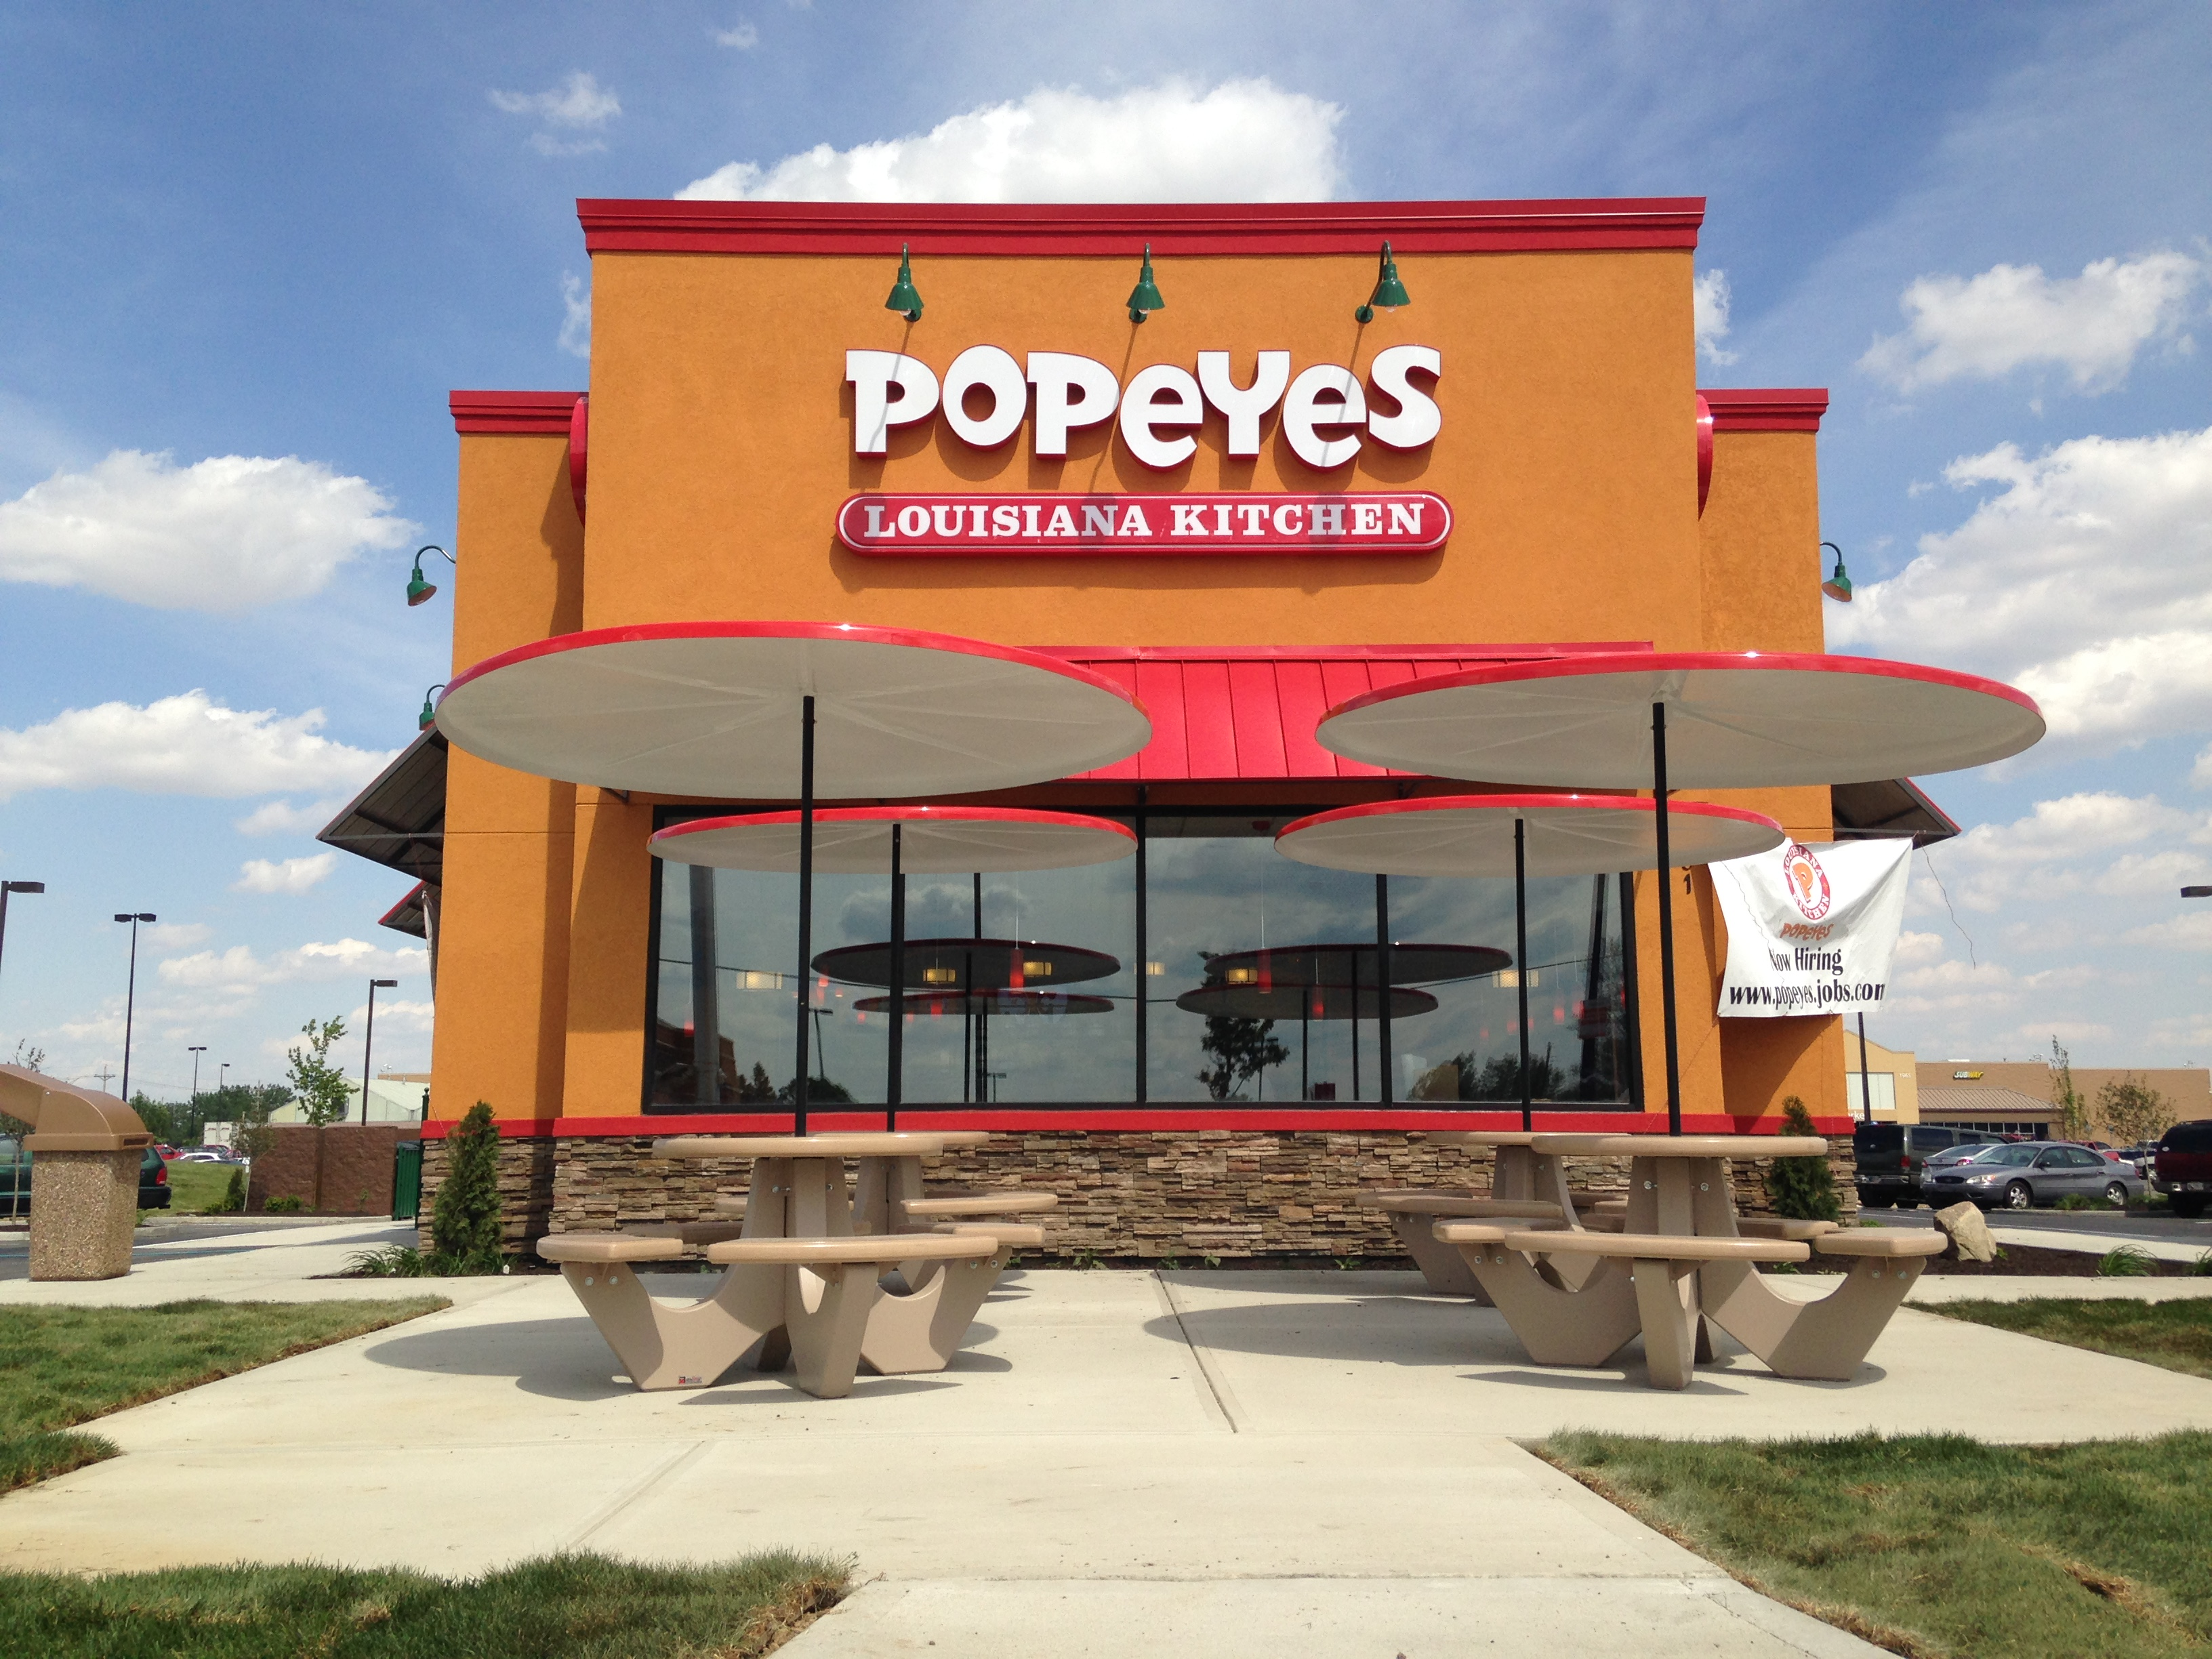 The first Popeyes location was opened by Al Copeland, Sr., in the New Orleans suburb of Arabi in It's there that Popeyes distinguished itself with our unique New Orleans style menu featuring spicy chicken, chicken tenders, fried shrimp and other regional items.